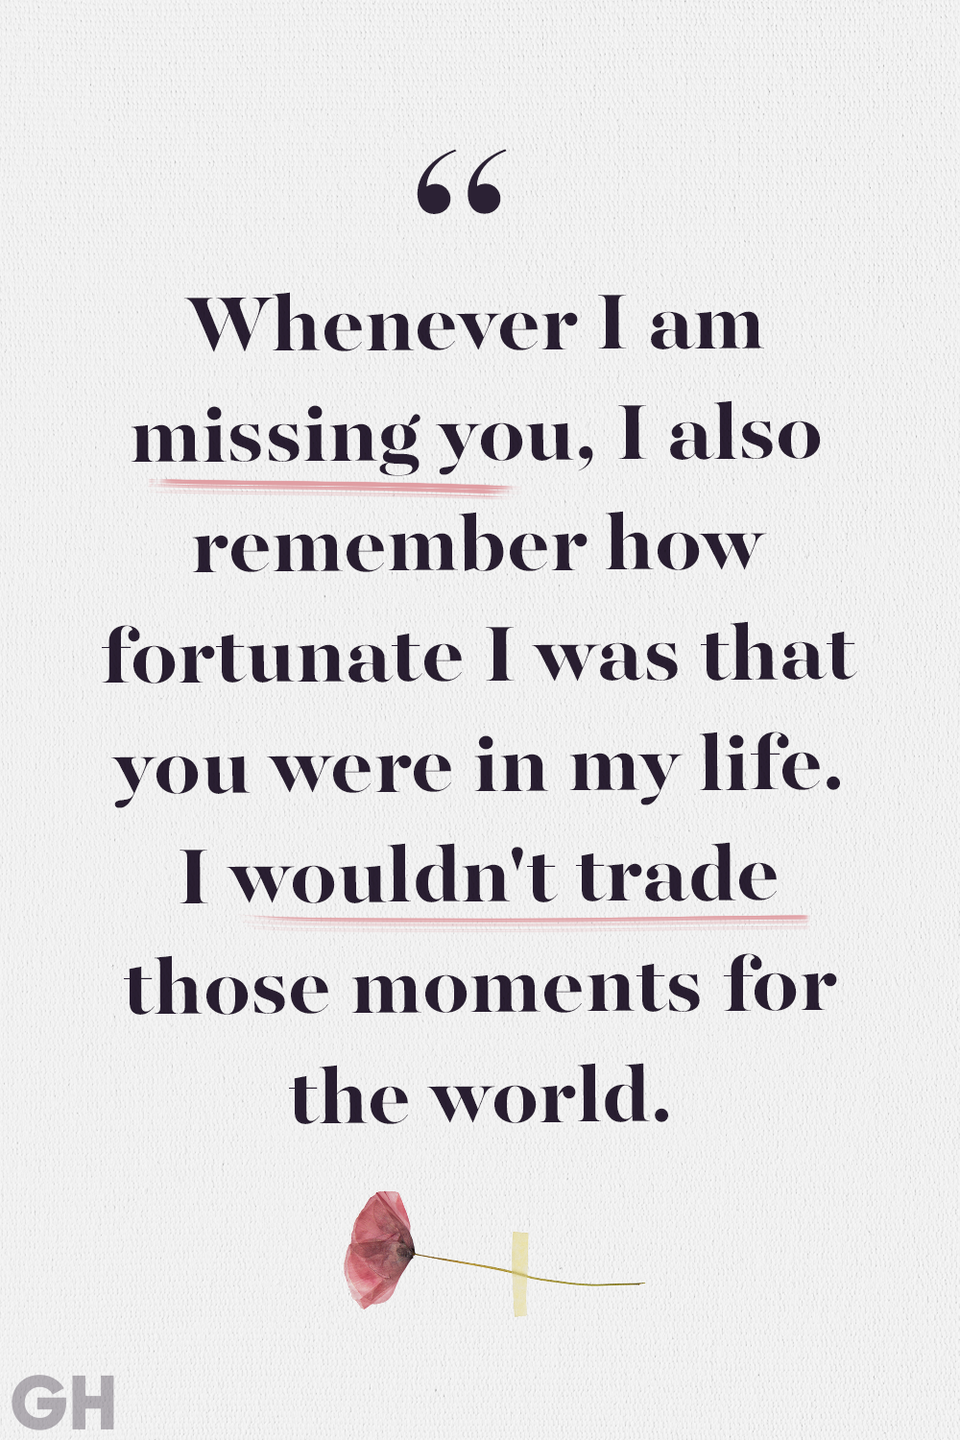 <p>Whenever I am missing you, I also remember how fortunate I was that you were in my life. I wouldn't trade those moments for the world.</p>